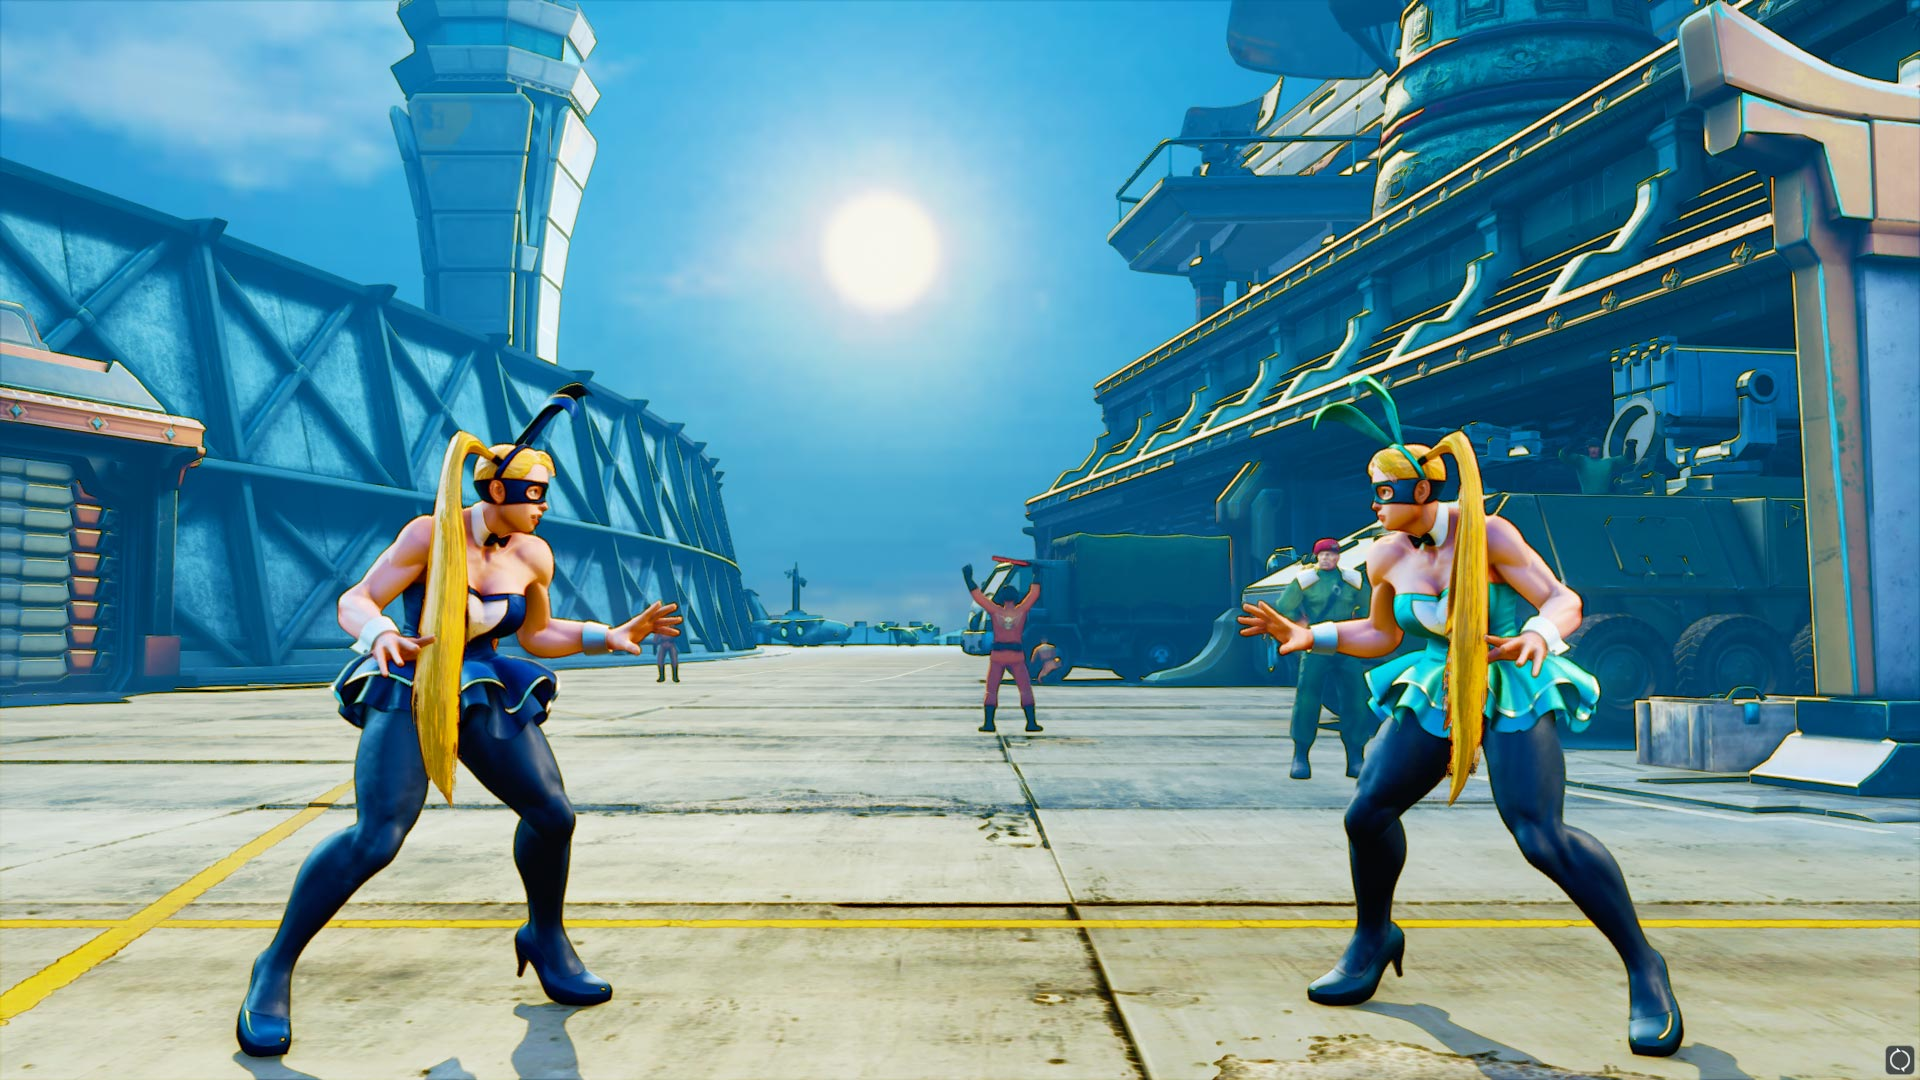 Professional costume colors for Street Fighter 5 20 out of 21 image gallery